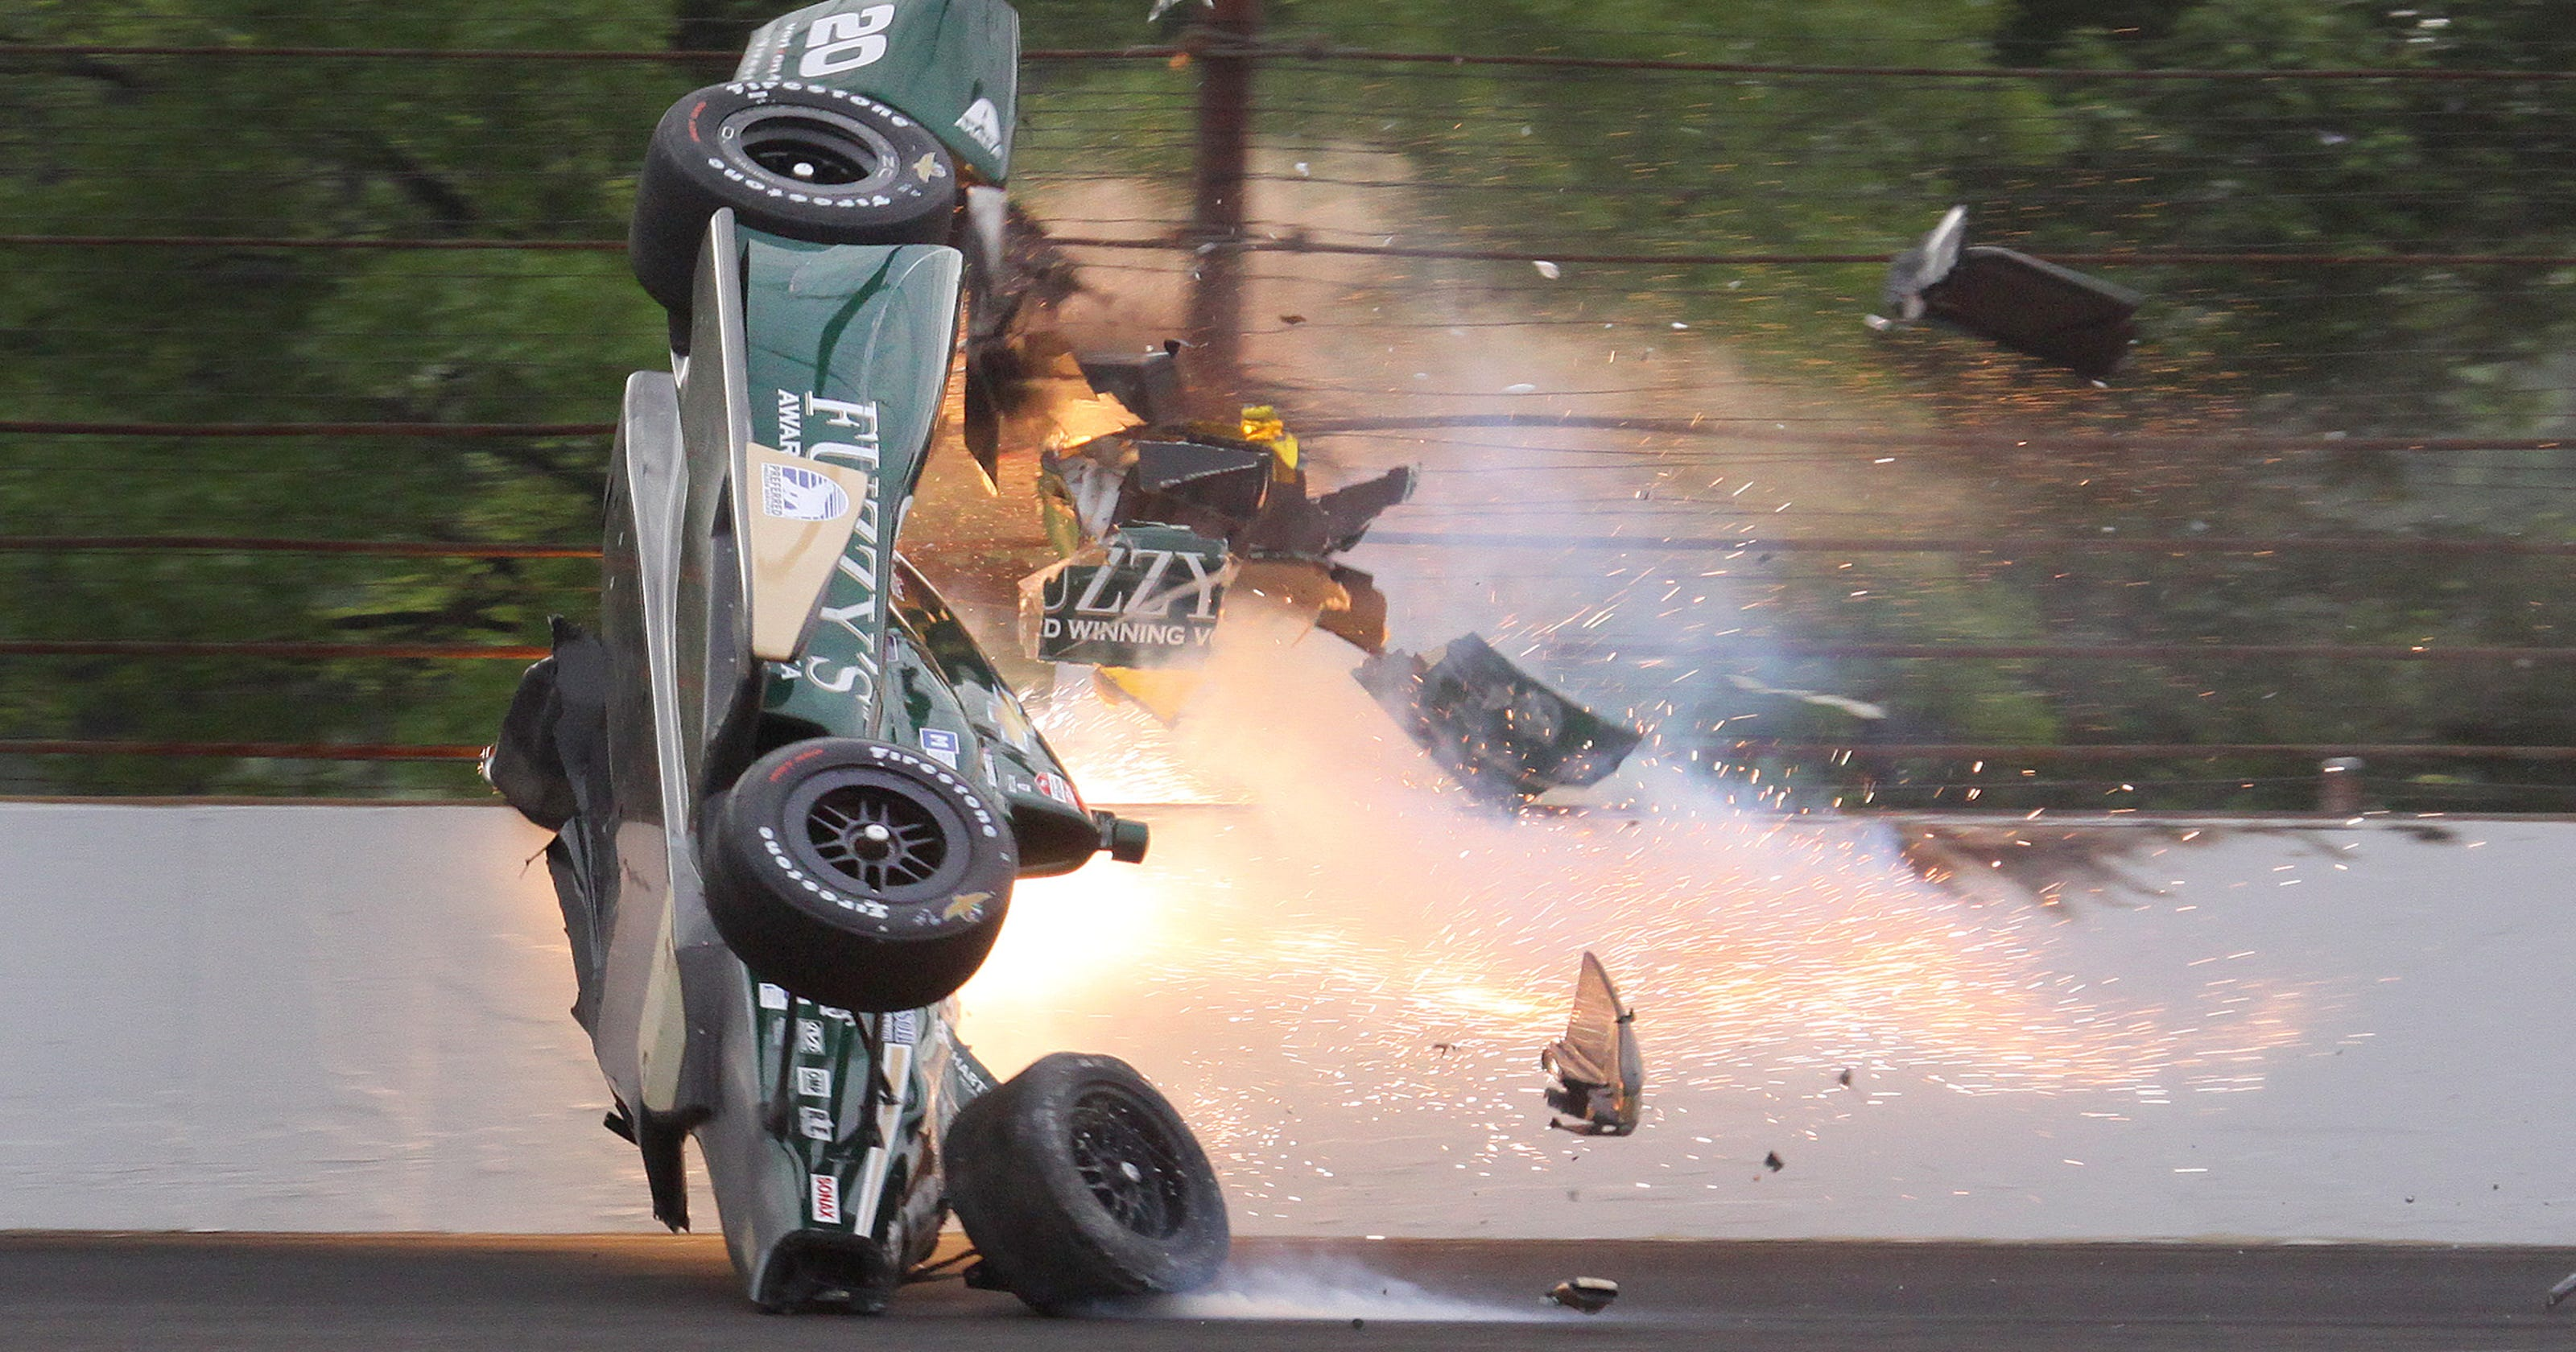 How much are IndyCar drivers paid for the risks of racing?